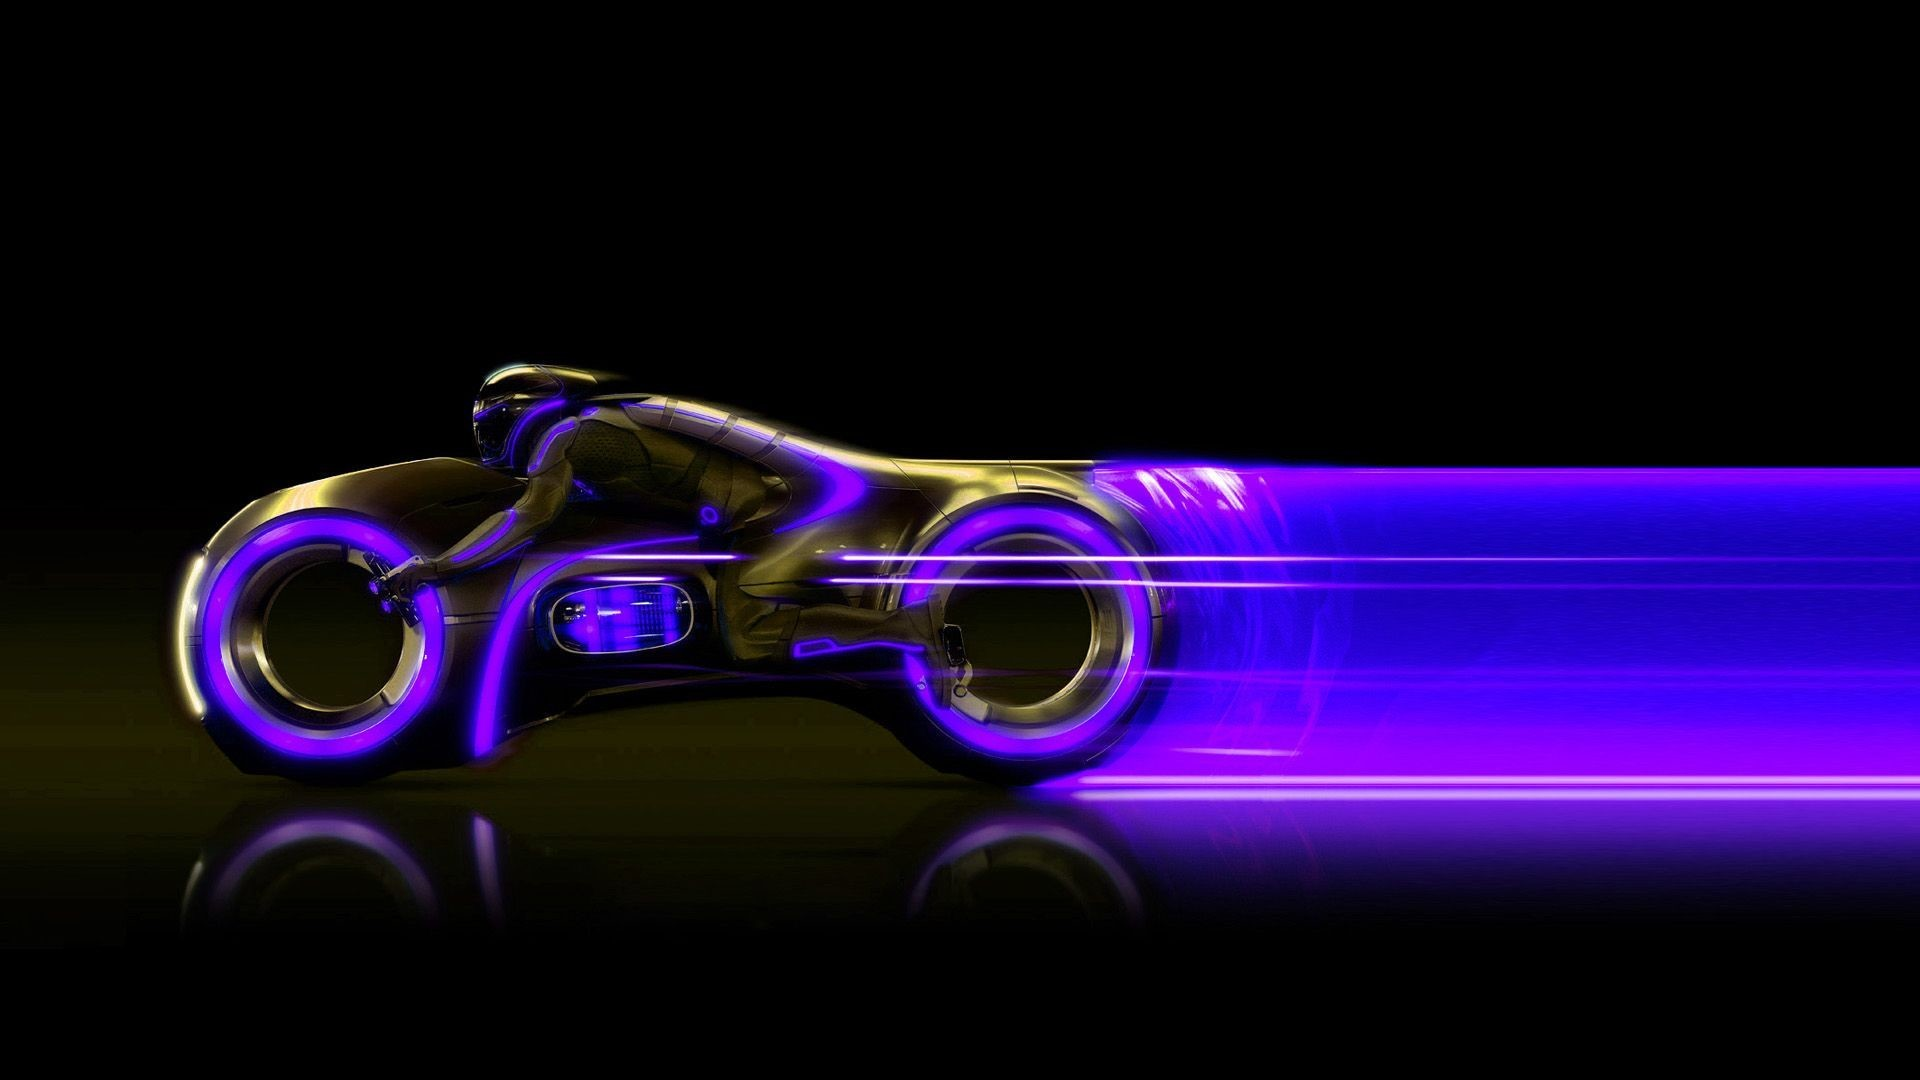 Wallpaper 3d Bike Tron Legacy Download: Tron Background (74+ Images